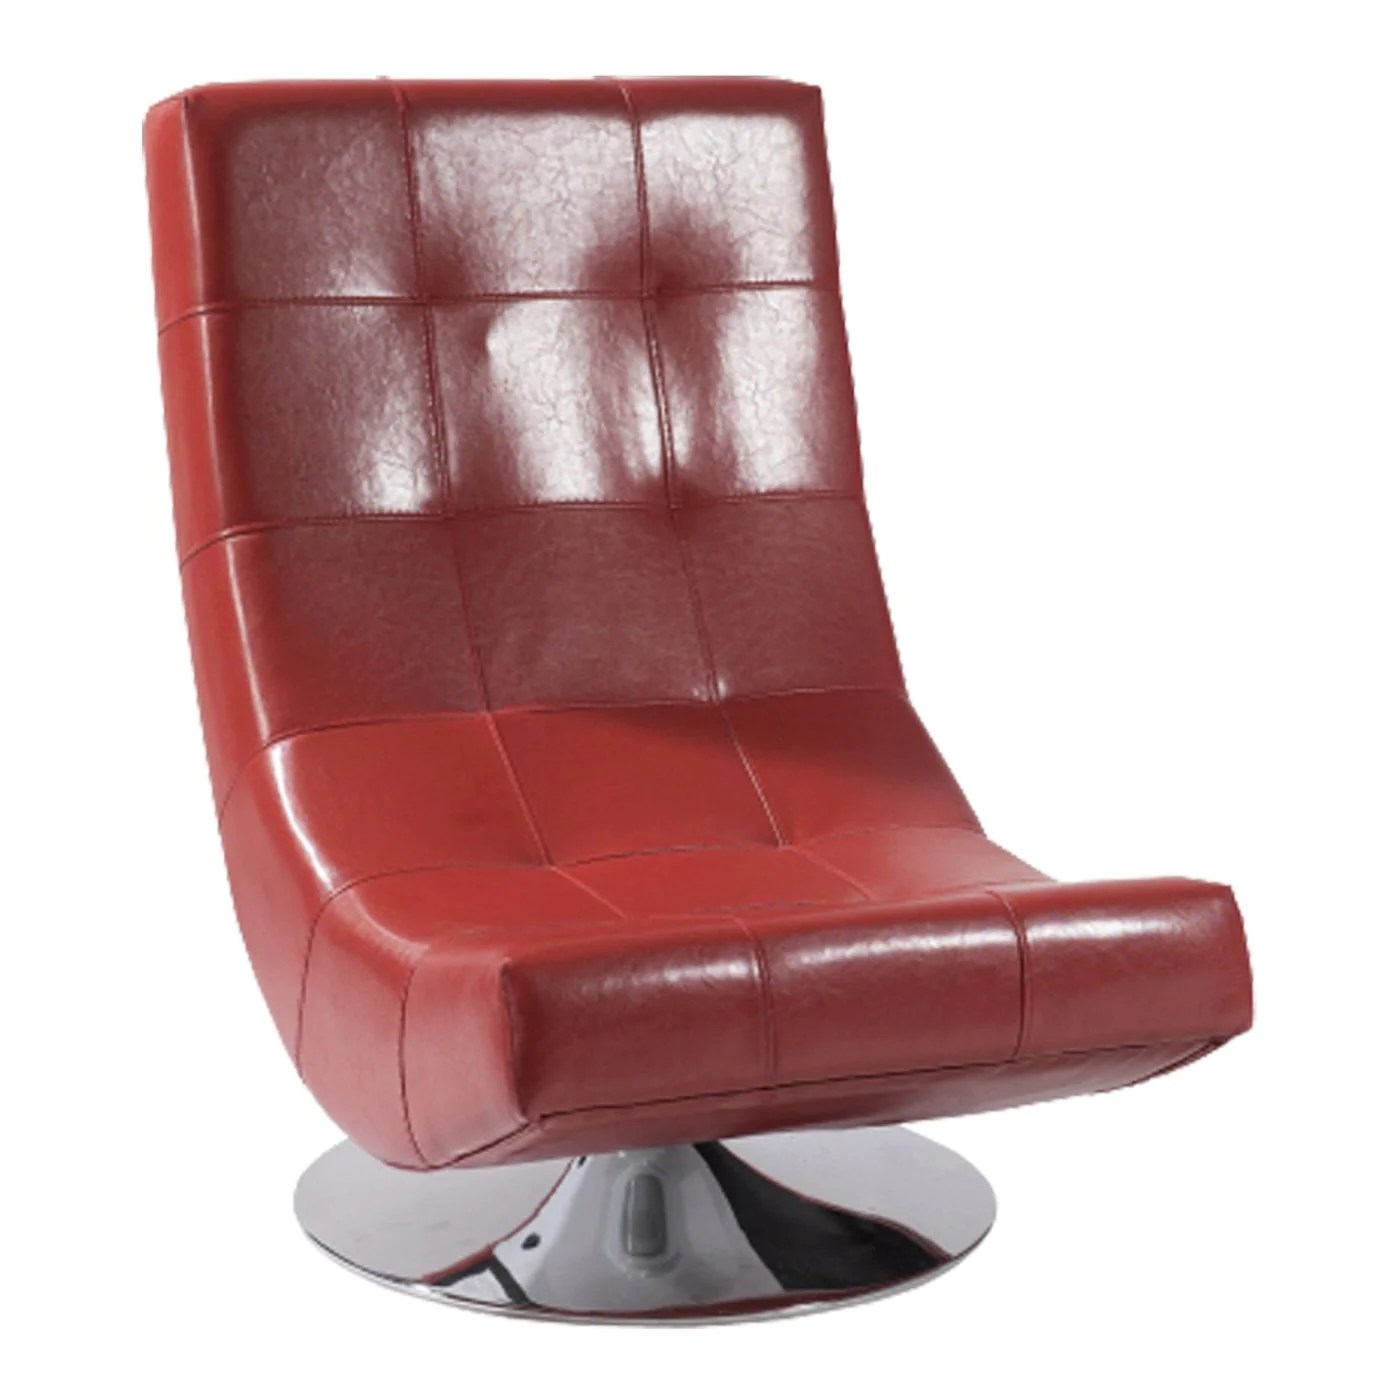 Buy Armen Living Lc3634clre Mario Swivel Chair Red Bonded Leather At Contemporary Furniture Warehouse